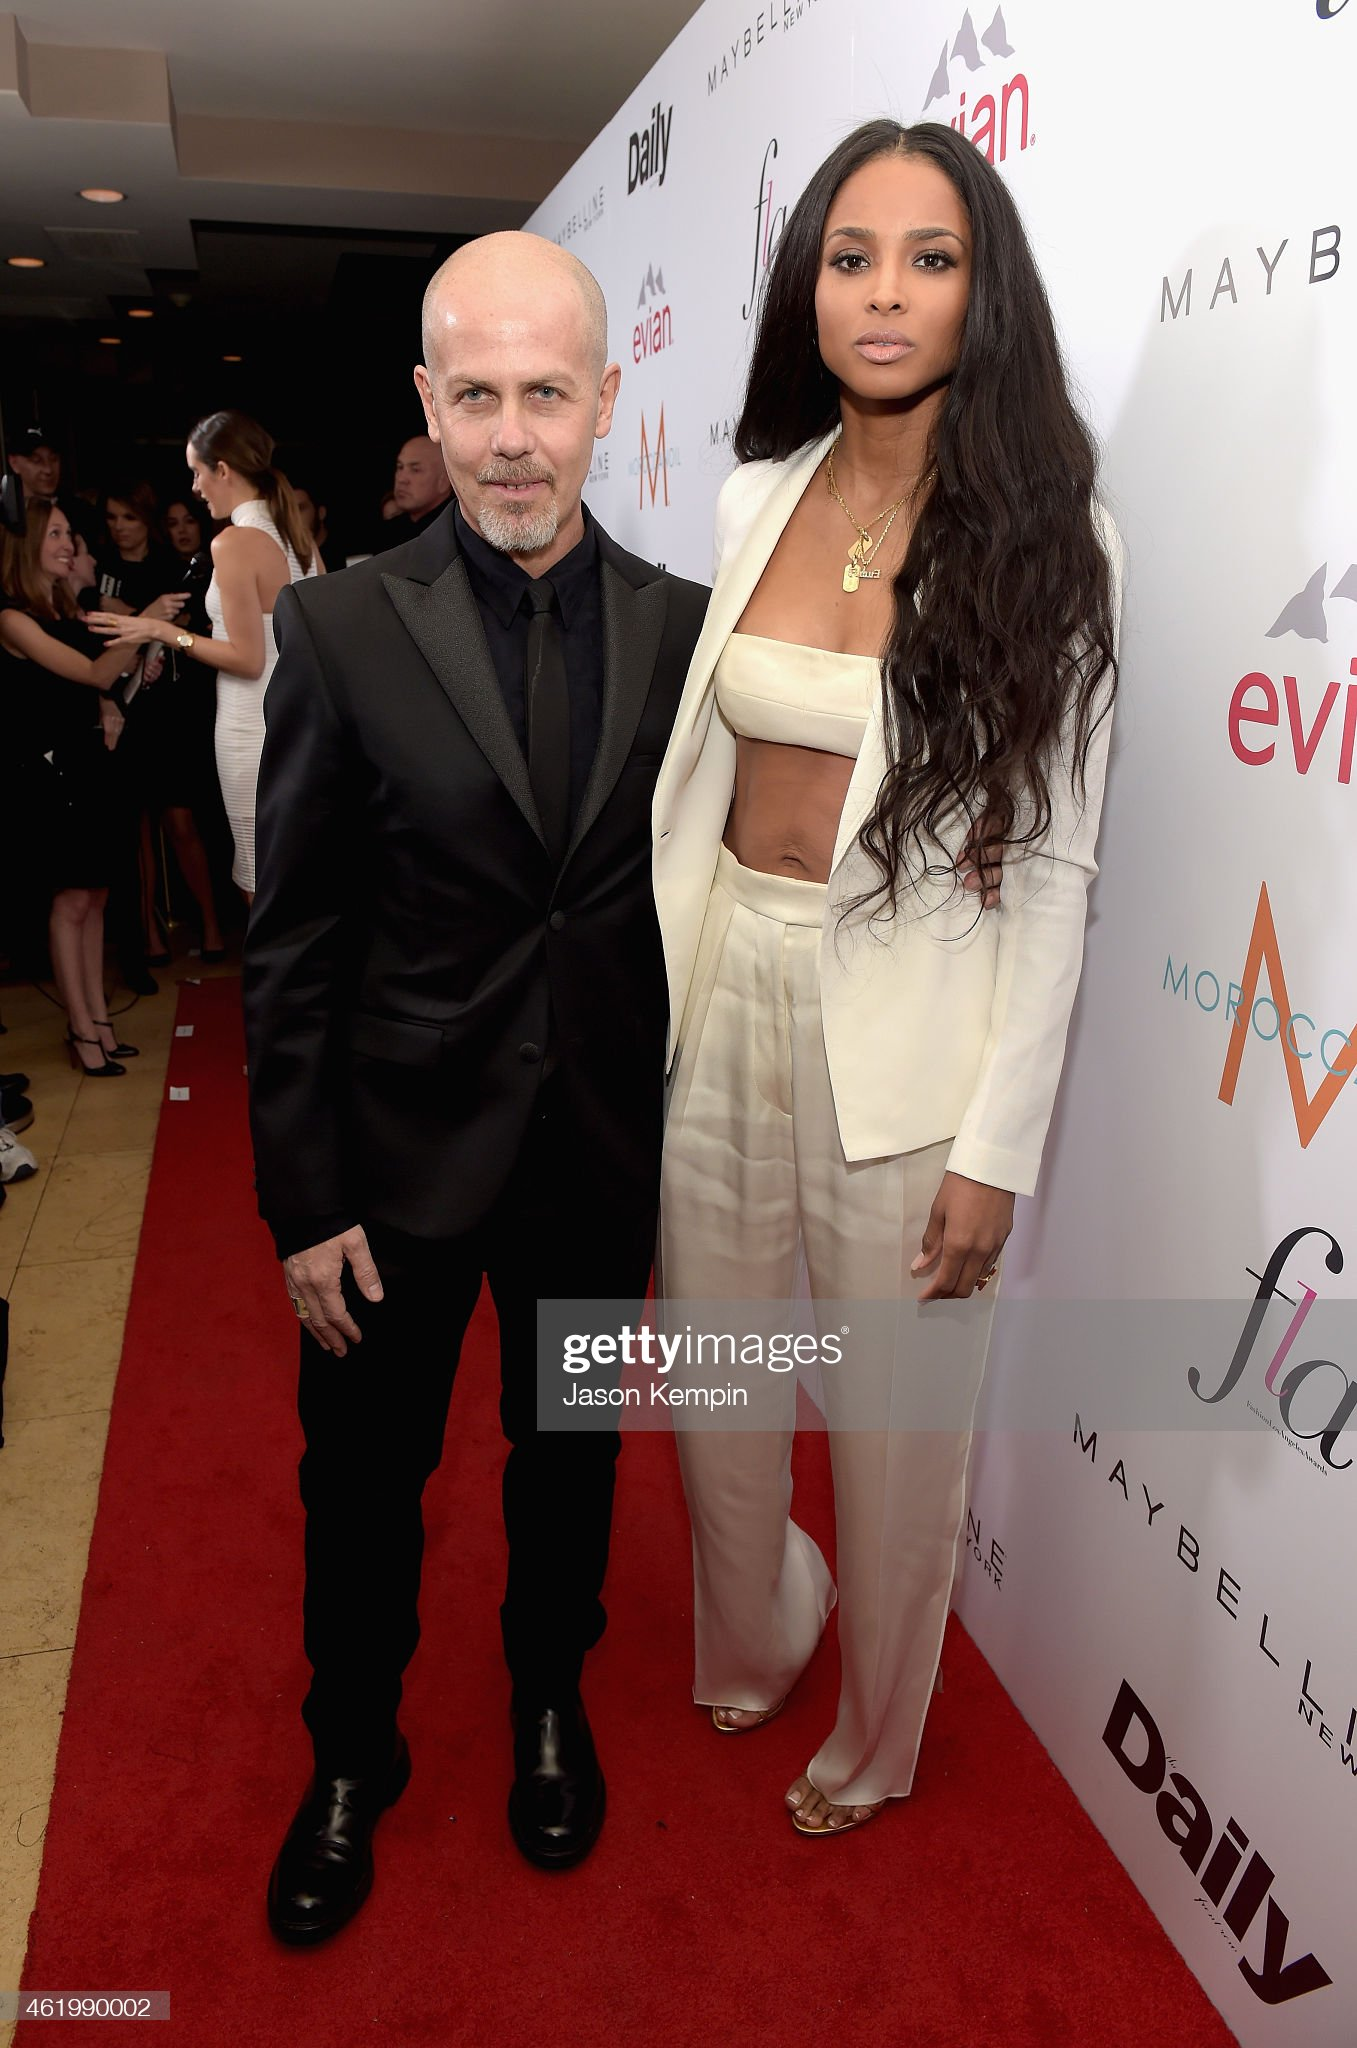 ¿Cuánto mide Ciara? - Real height Honoree-italo-zucchelli-and-singersongwriter-ciara-attend-the-daily-picture-id461990002?s=2048x2048